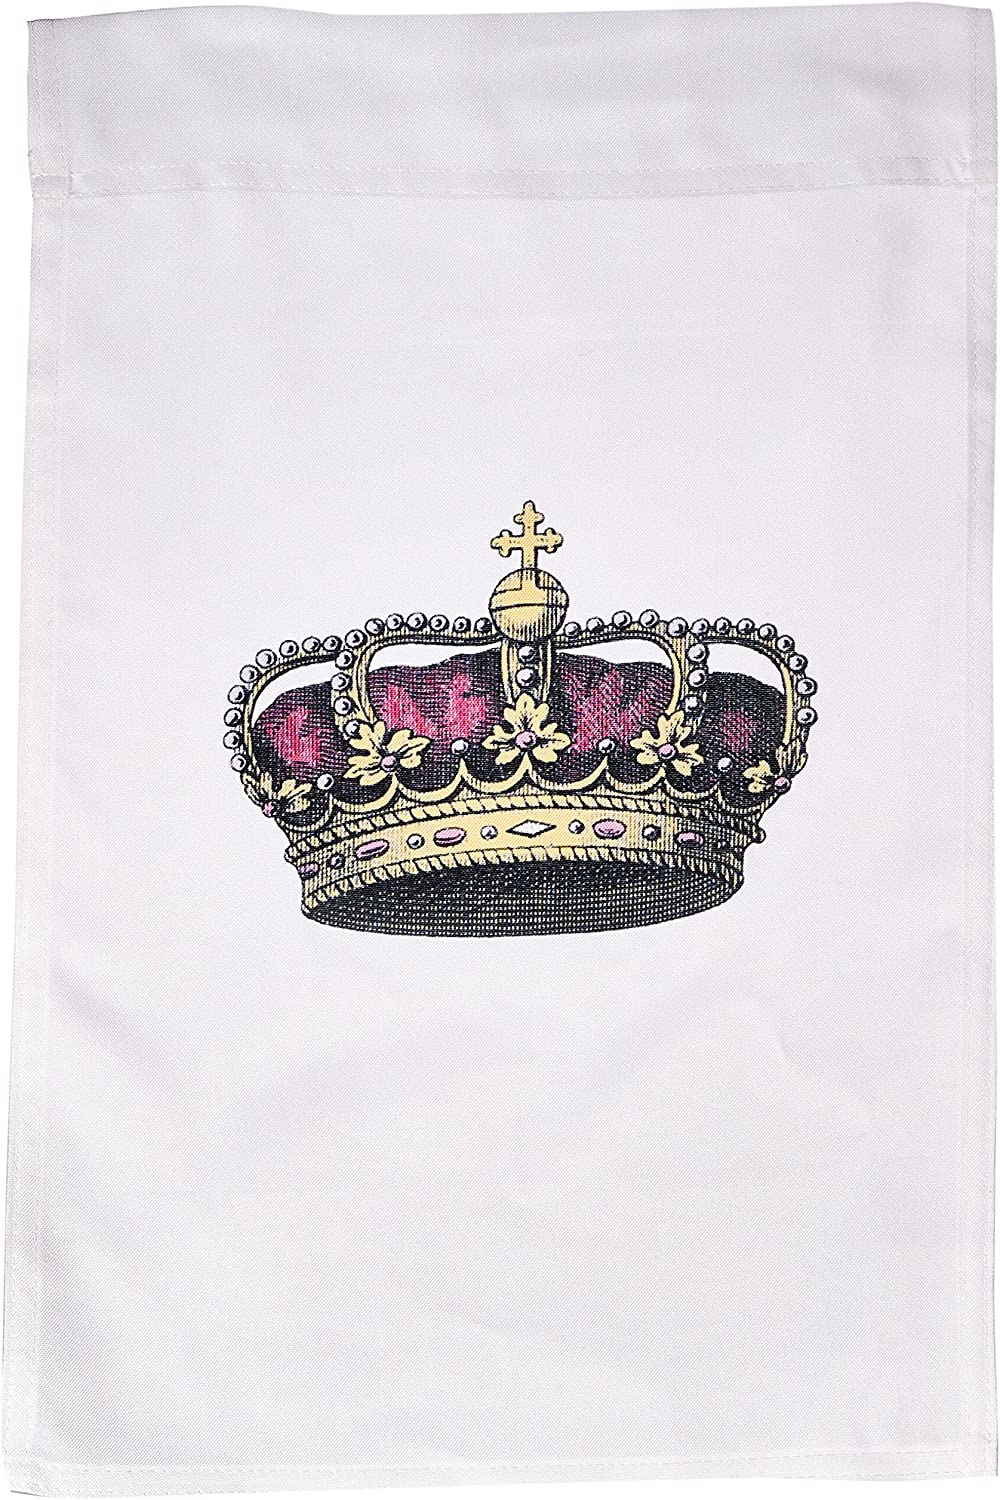 3dRose fl_151449_1 Pink Girly Crown-Vintage Art-Royalty-Royal Gold Queen or Princess Crown with Pearls and Cross Garden Flag, 12 by 18-Inch